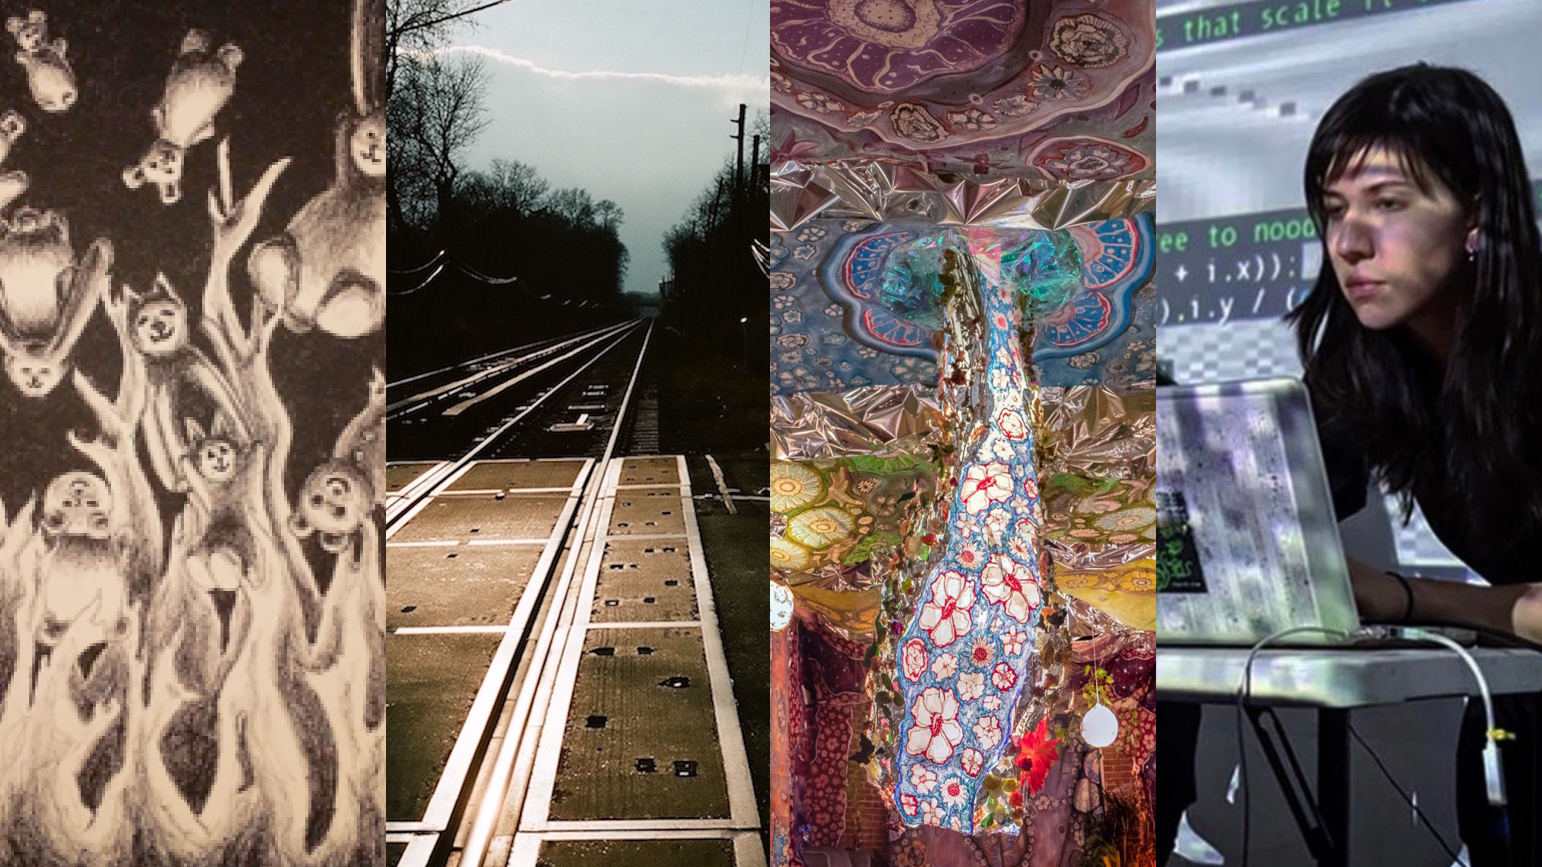 Four artworks: 1) Drawing of stuffed animals and flames; 2) Photograph of train tracks; 3) Colorful abstract work; 4) Photo of a person sitting at a laptop with a screen behind them